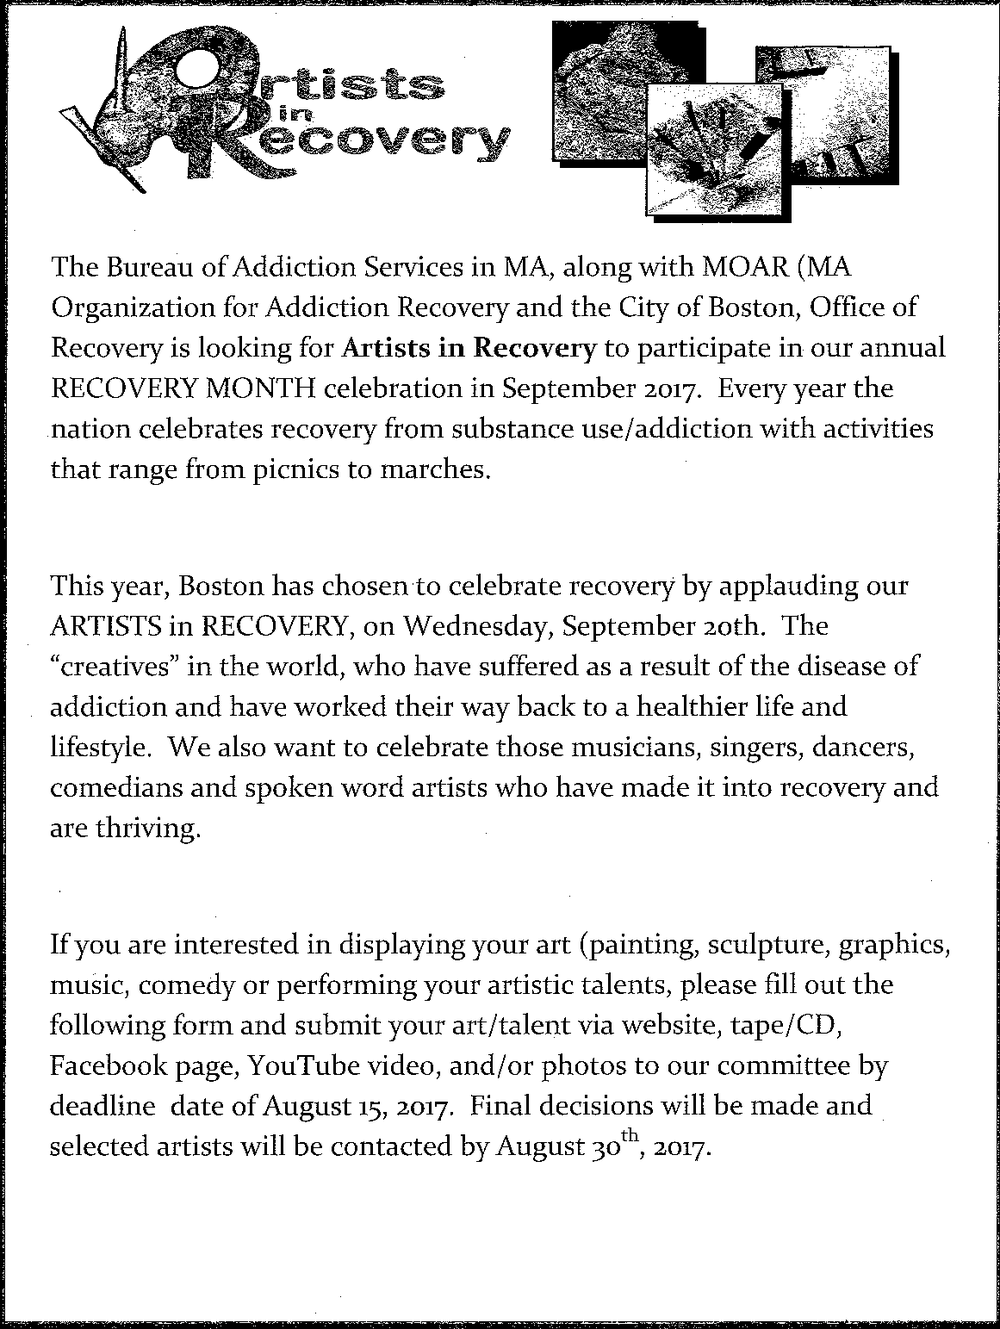 Calling Artists in Recovery! - The Bureau of Addiction Services in Massachusetts, along with the Massachusetts Organization for Addiction Recovery, is looking for Artists in Recovery to participate in Recovery Month 2017 programming. If you are an artist in recovery interested in displaying your art, email Elizabeth@MOAR-Recovery.org for more information on how to apply. DEADLINE for application is August 15.